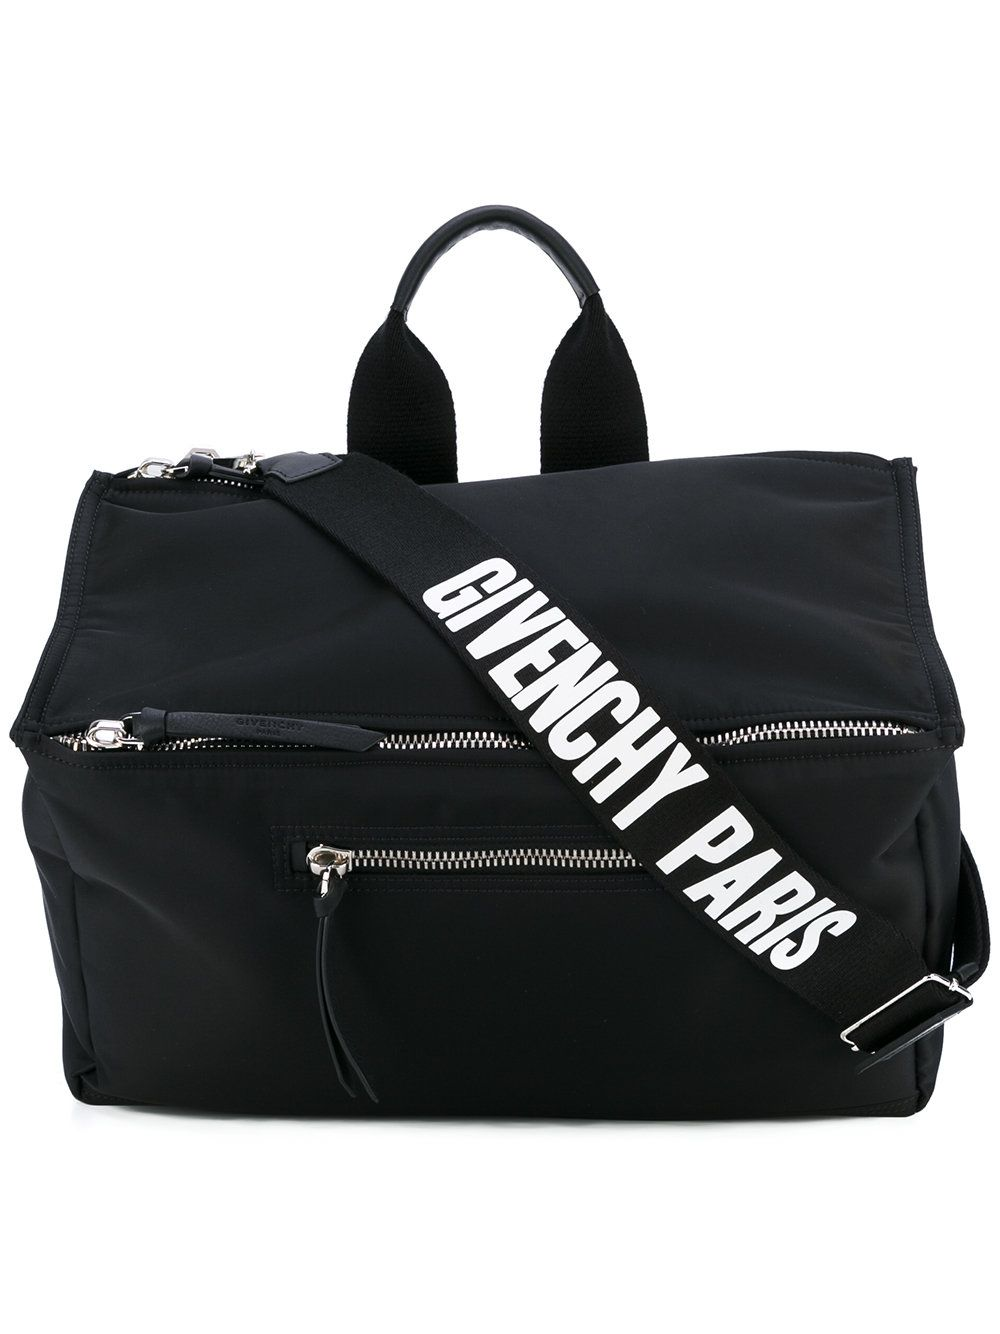 4f6c3139bb27 Givenchy Pandora Shell Bag in 2019